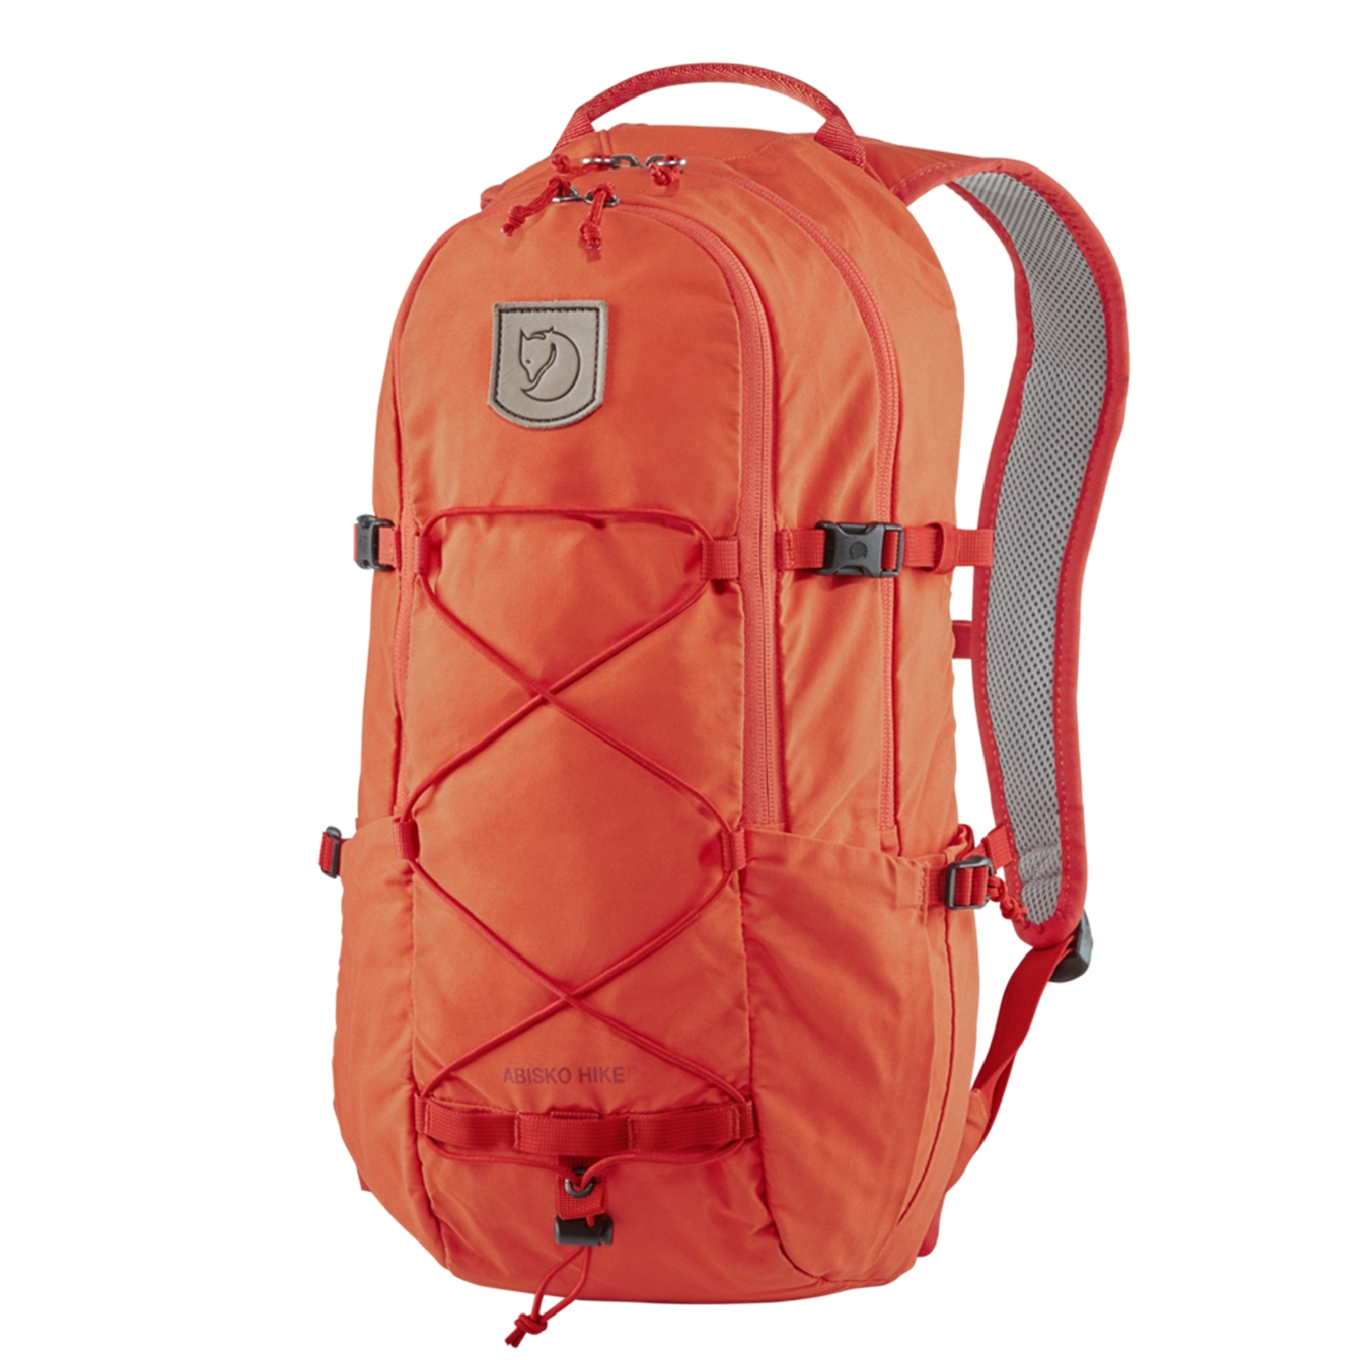 Fjallraven Abisko Hike 15 flame orange backpack